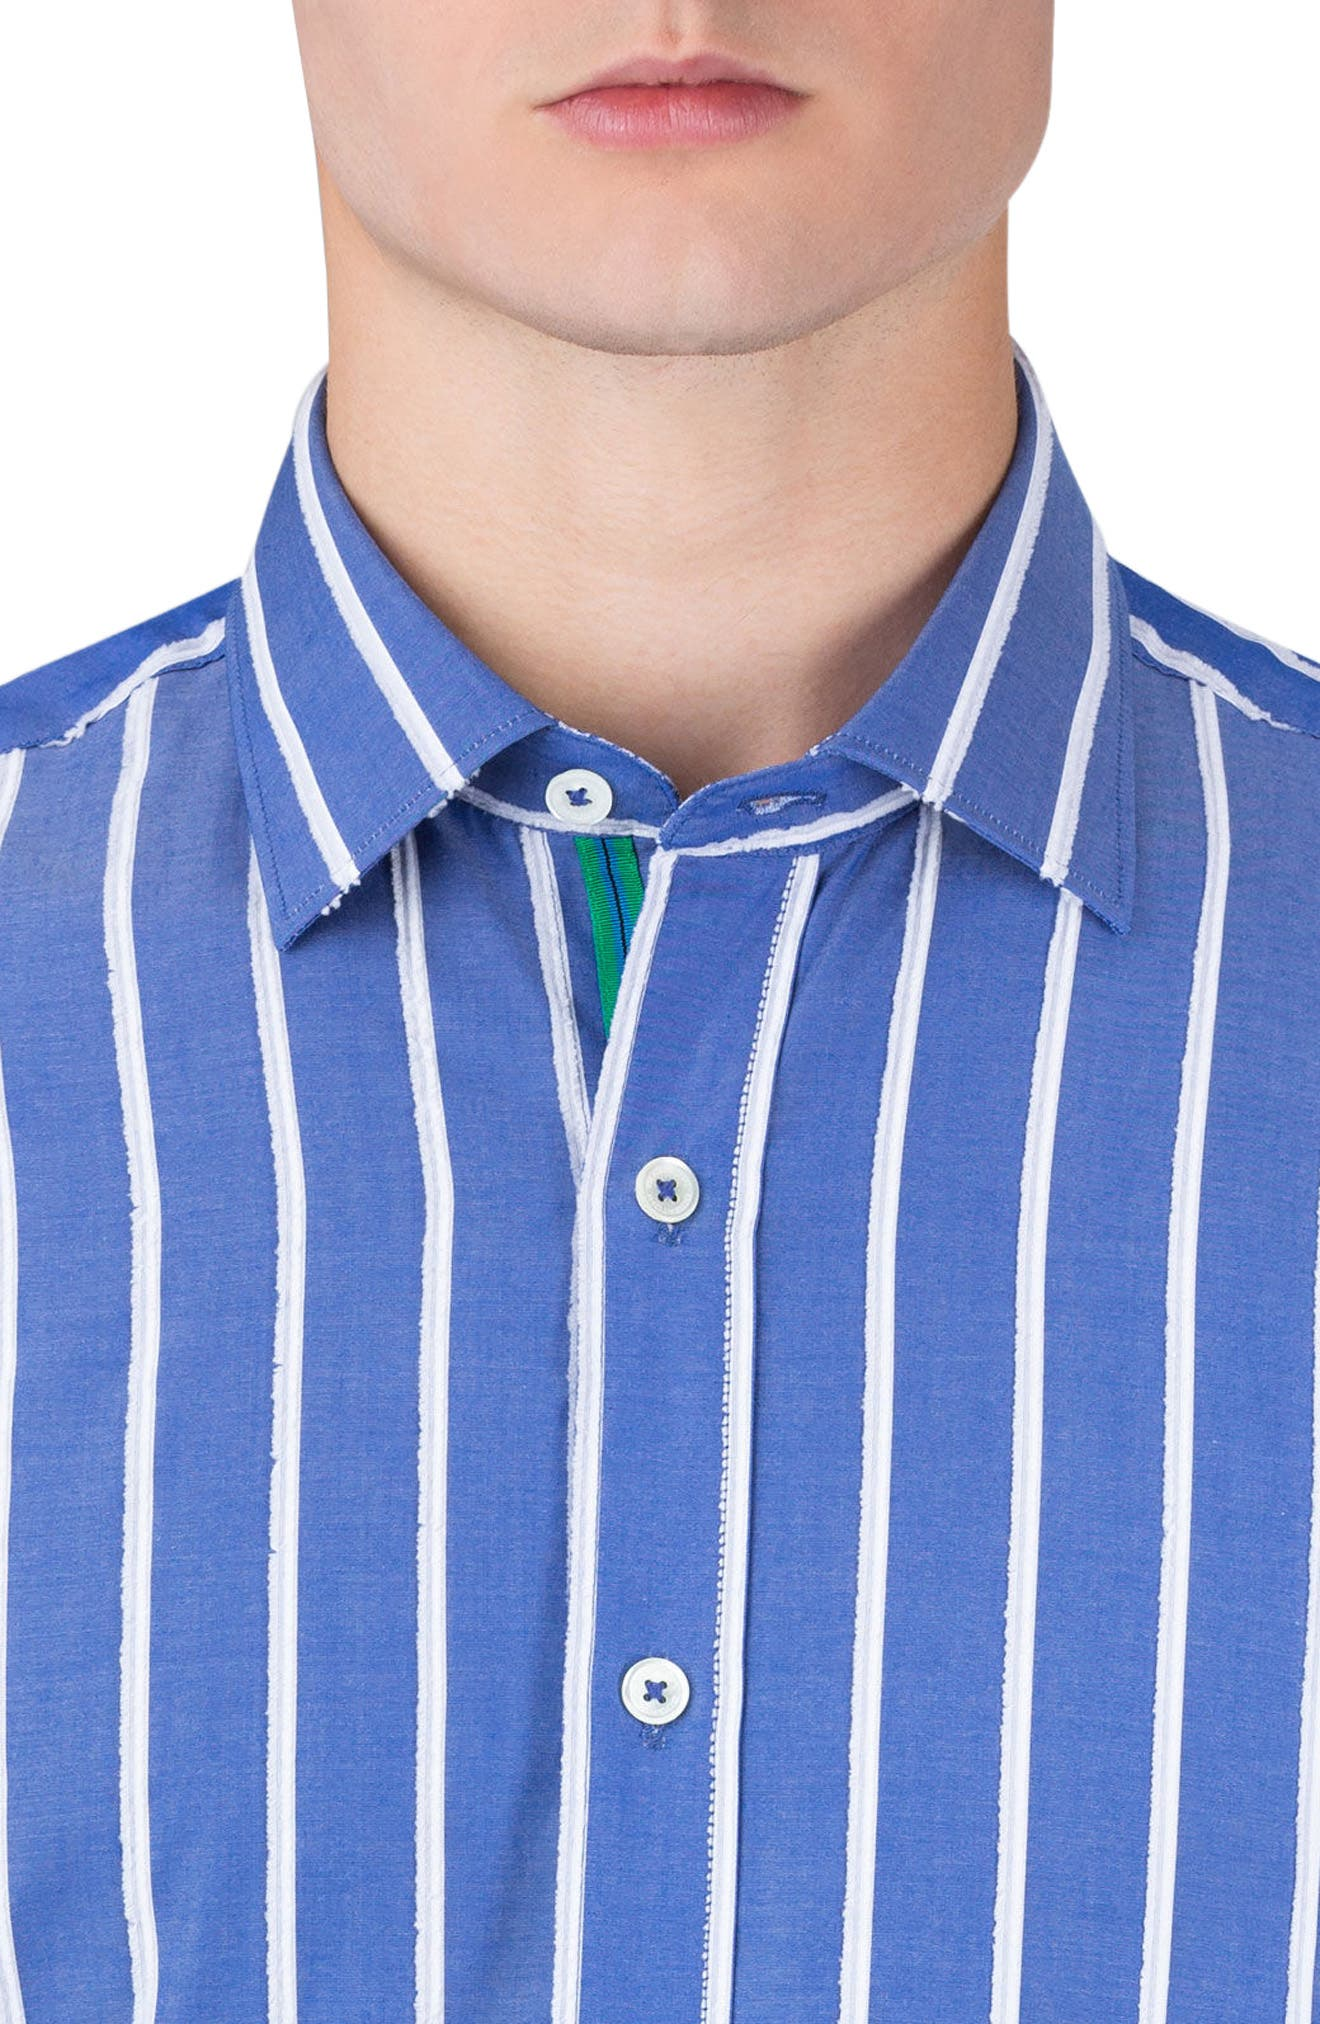 Classic Fit Vertical Stripe Sport Shirt,                             Alternate thumbnail 3, color,                             Night Blue